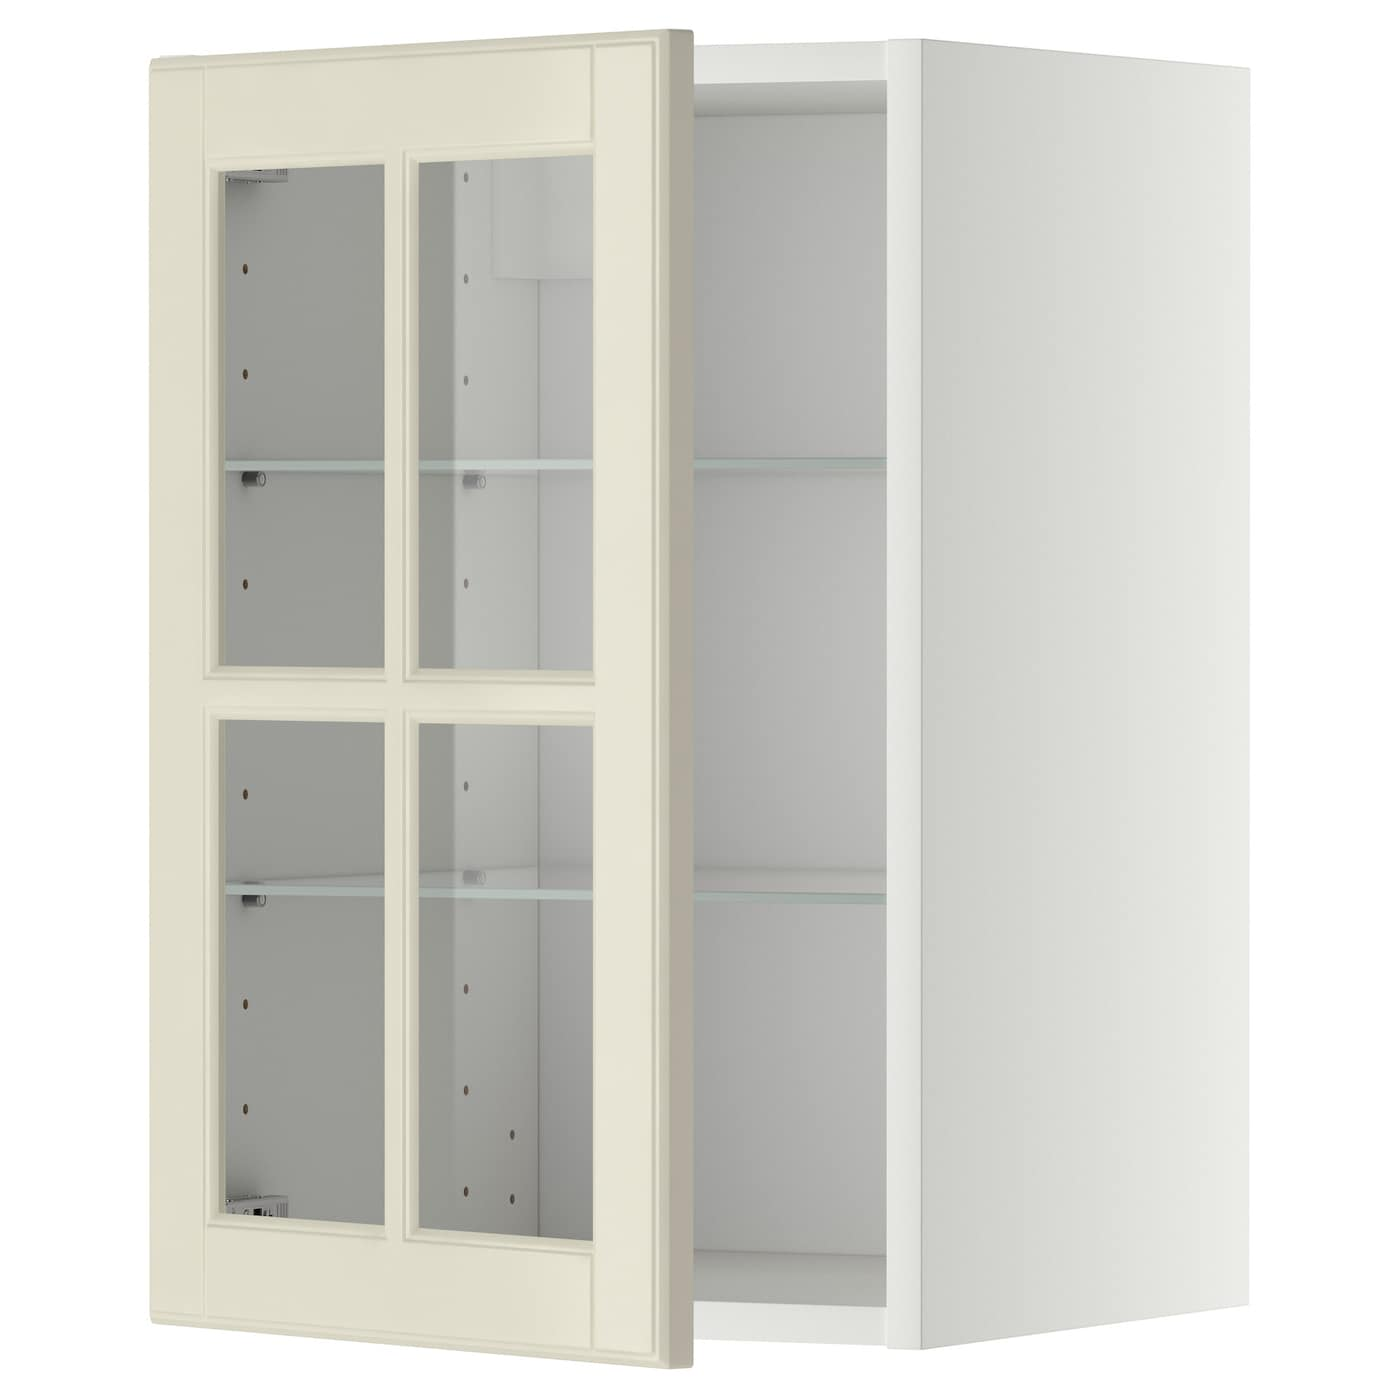 Metod wall cabinet w shelves glass door white bodbyn off for Ikea glass door wall cabinet